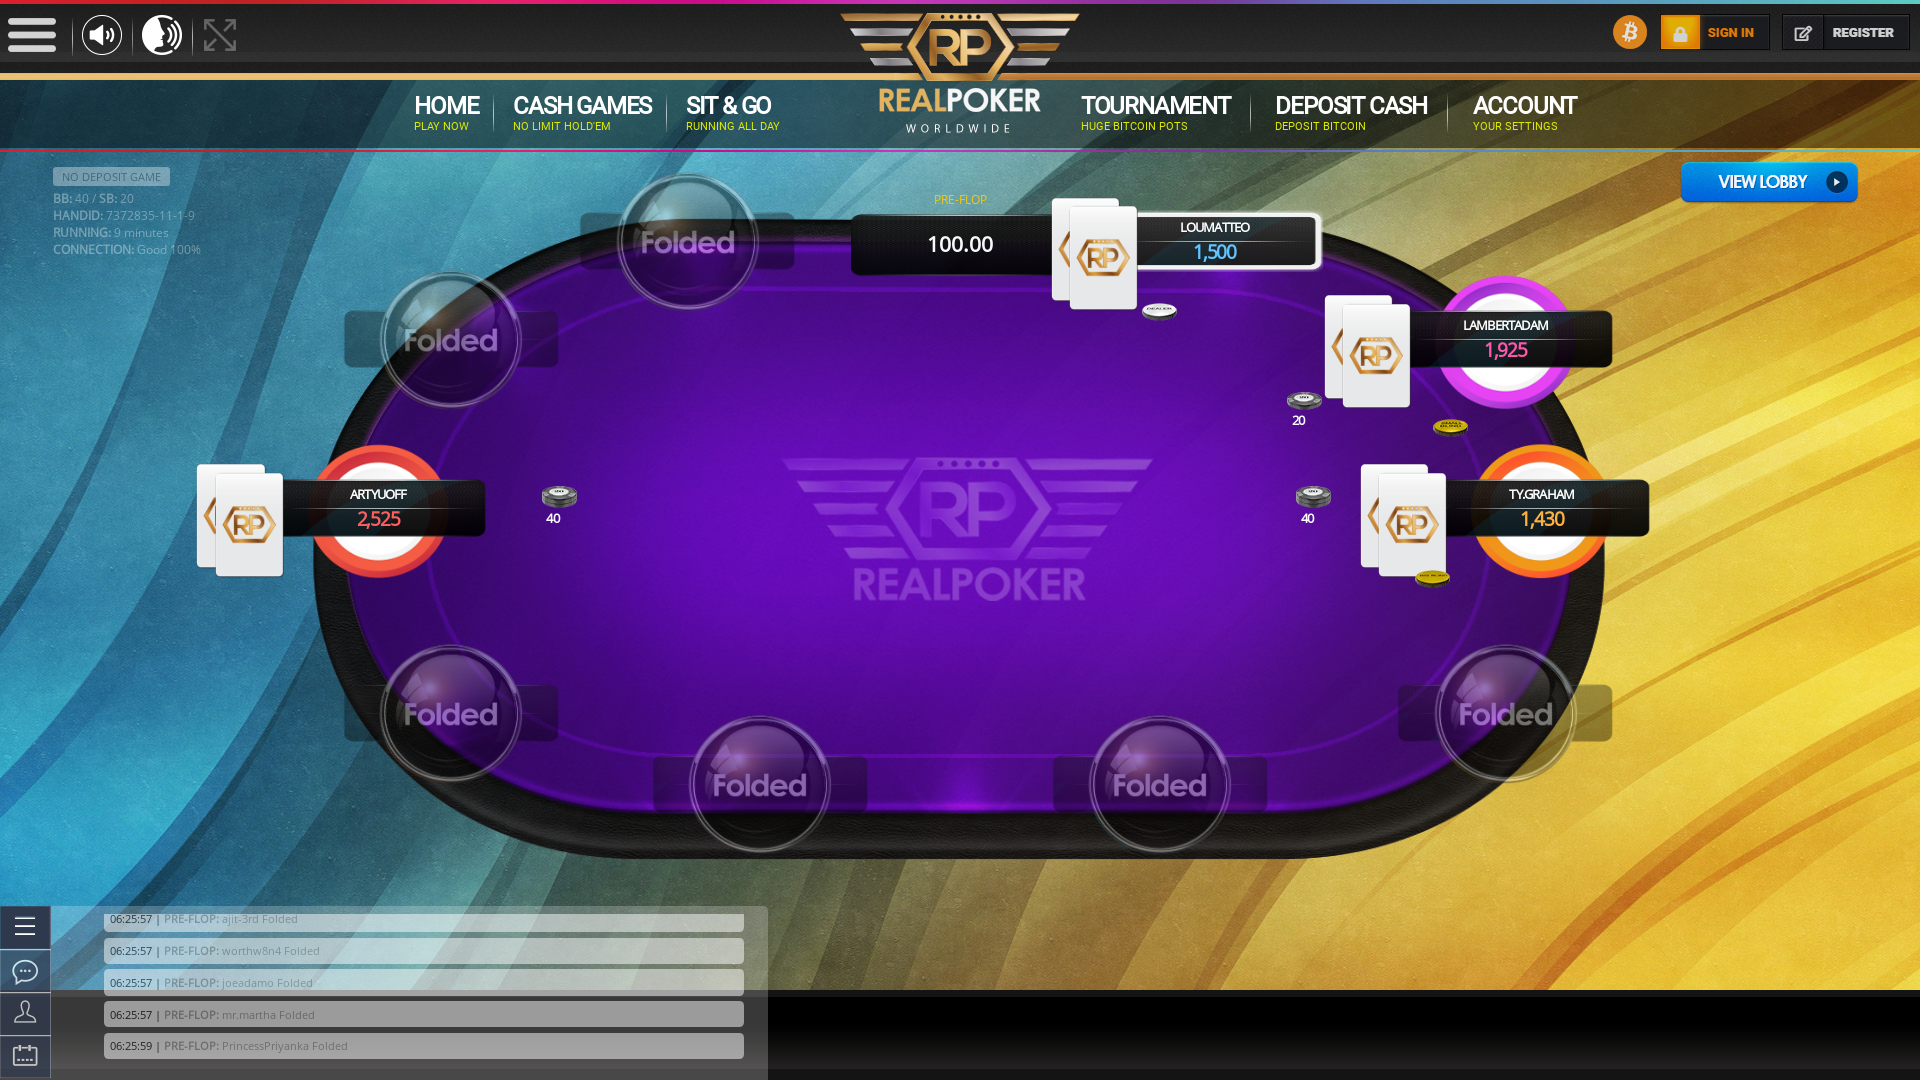 Macau Casino Bitcoin Poker from 5th April